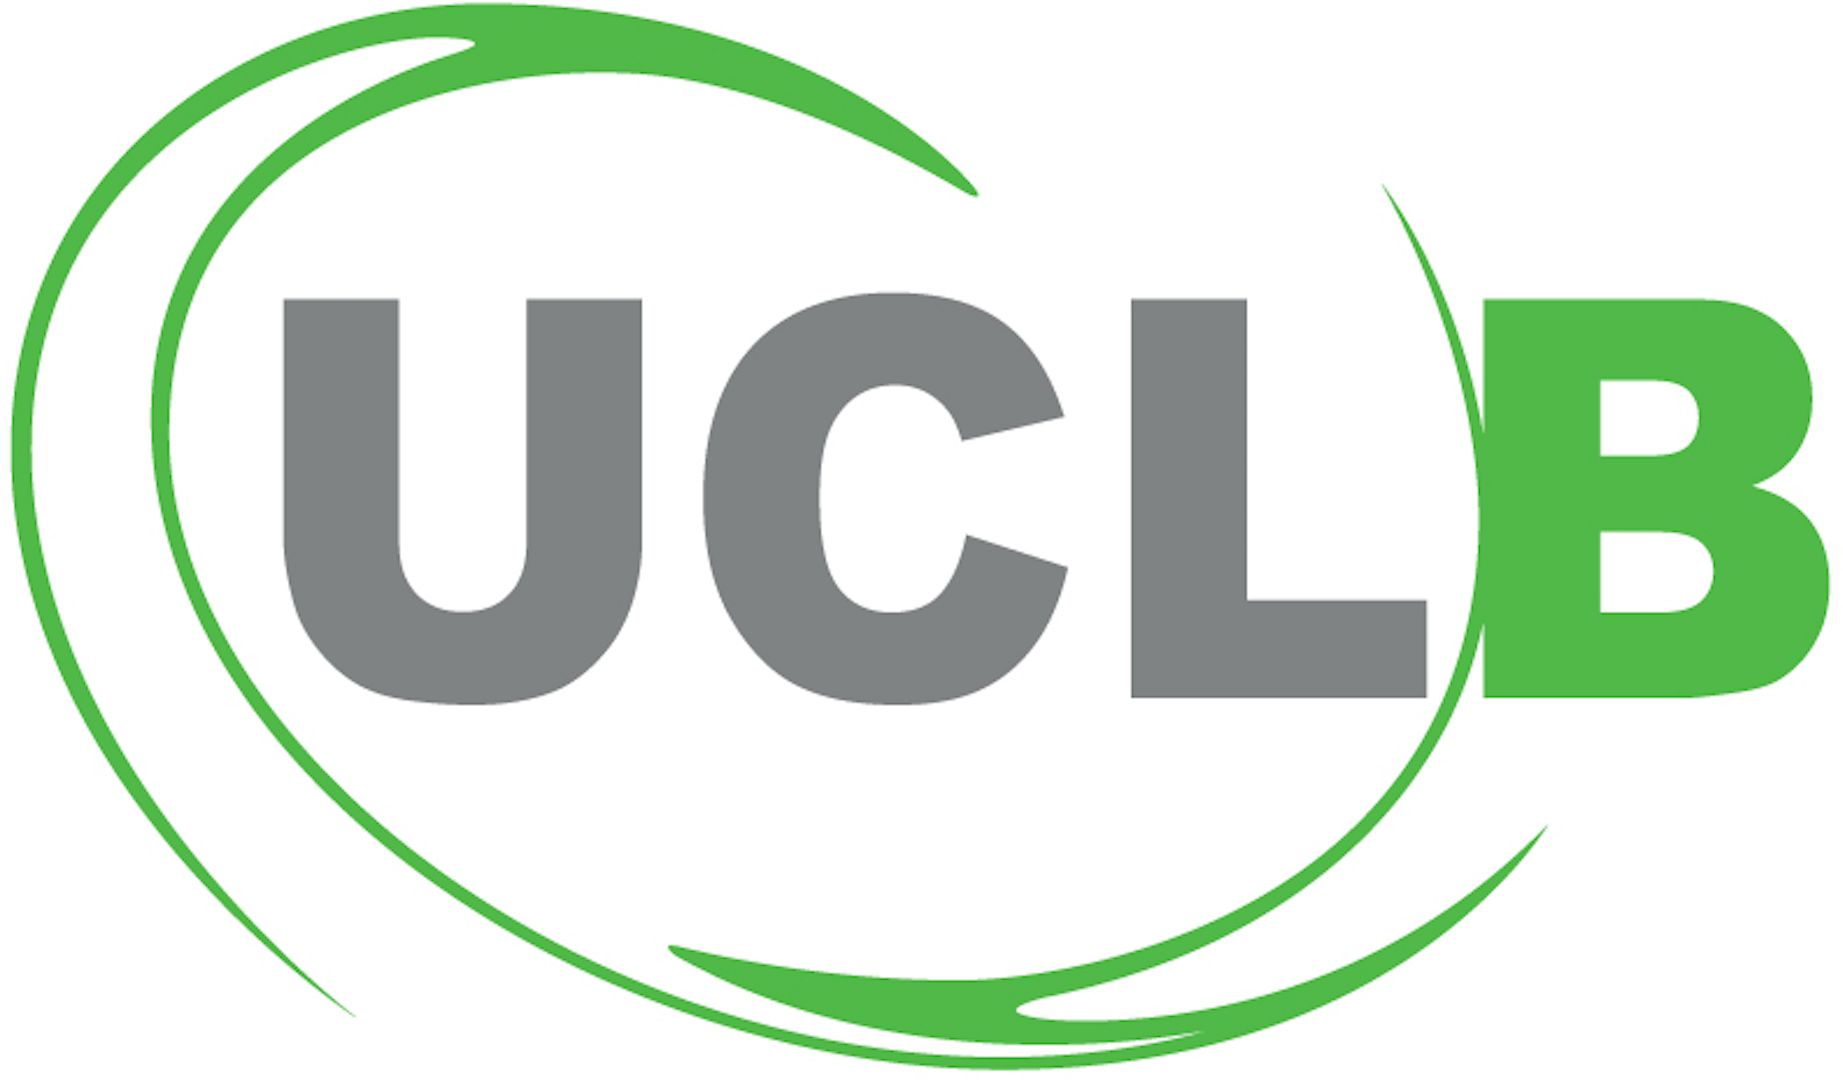 Pfizer secures assets from Intercytex to support UCL